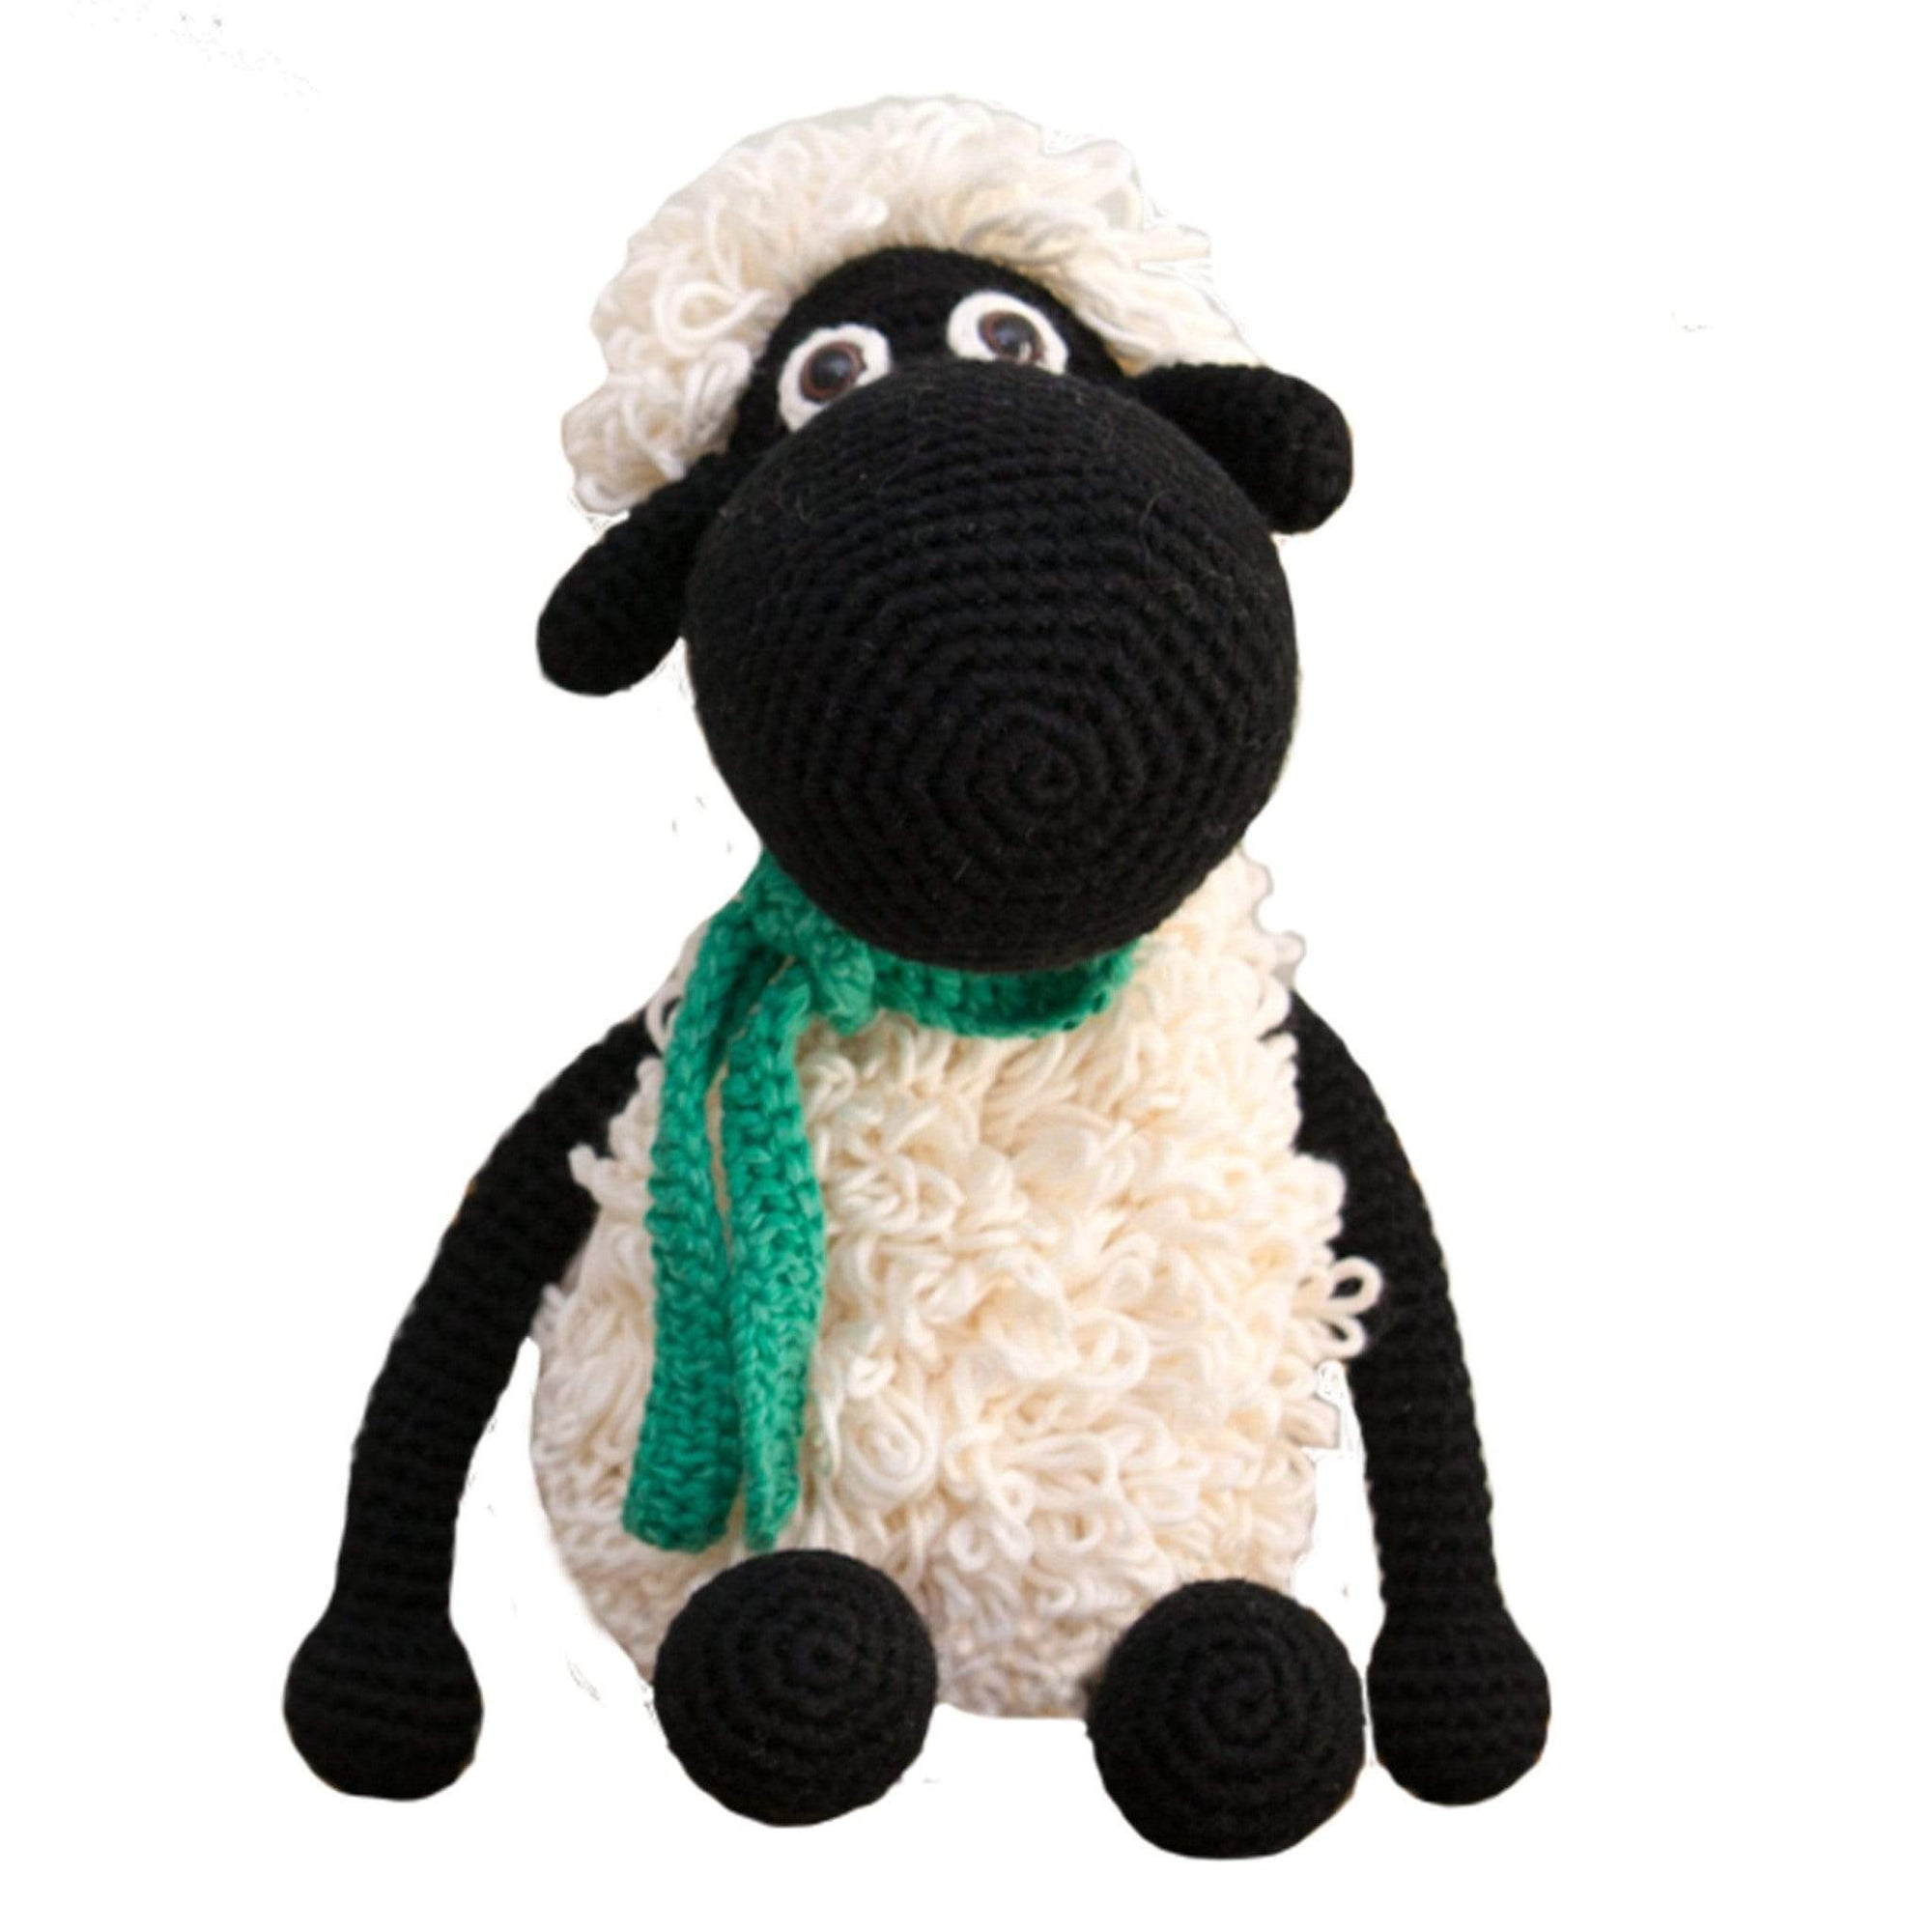 bebemoss.com stuffed animal Darla the sheep - black handmade by moms  gifts with purpose